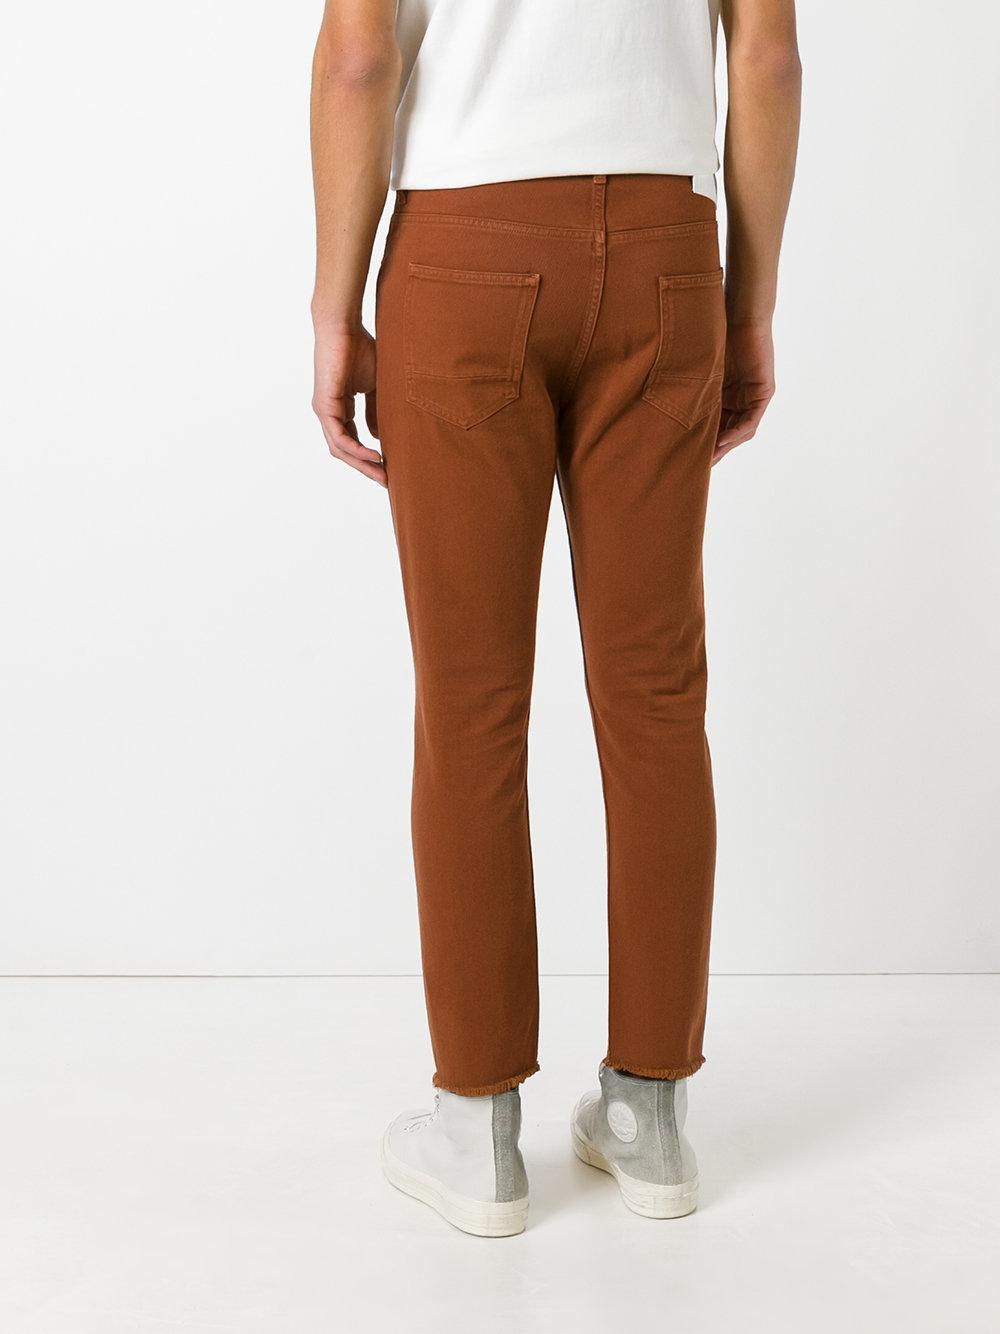 Golden Goose Deluxe Brand Cotton Frayed-edge Trousers in Yellow & Orange (Brown) for Men